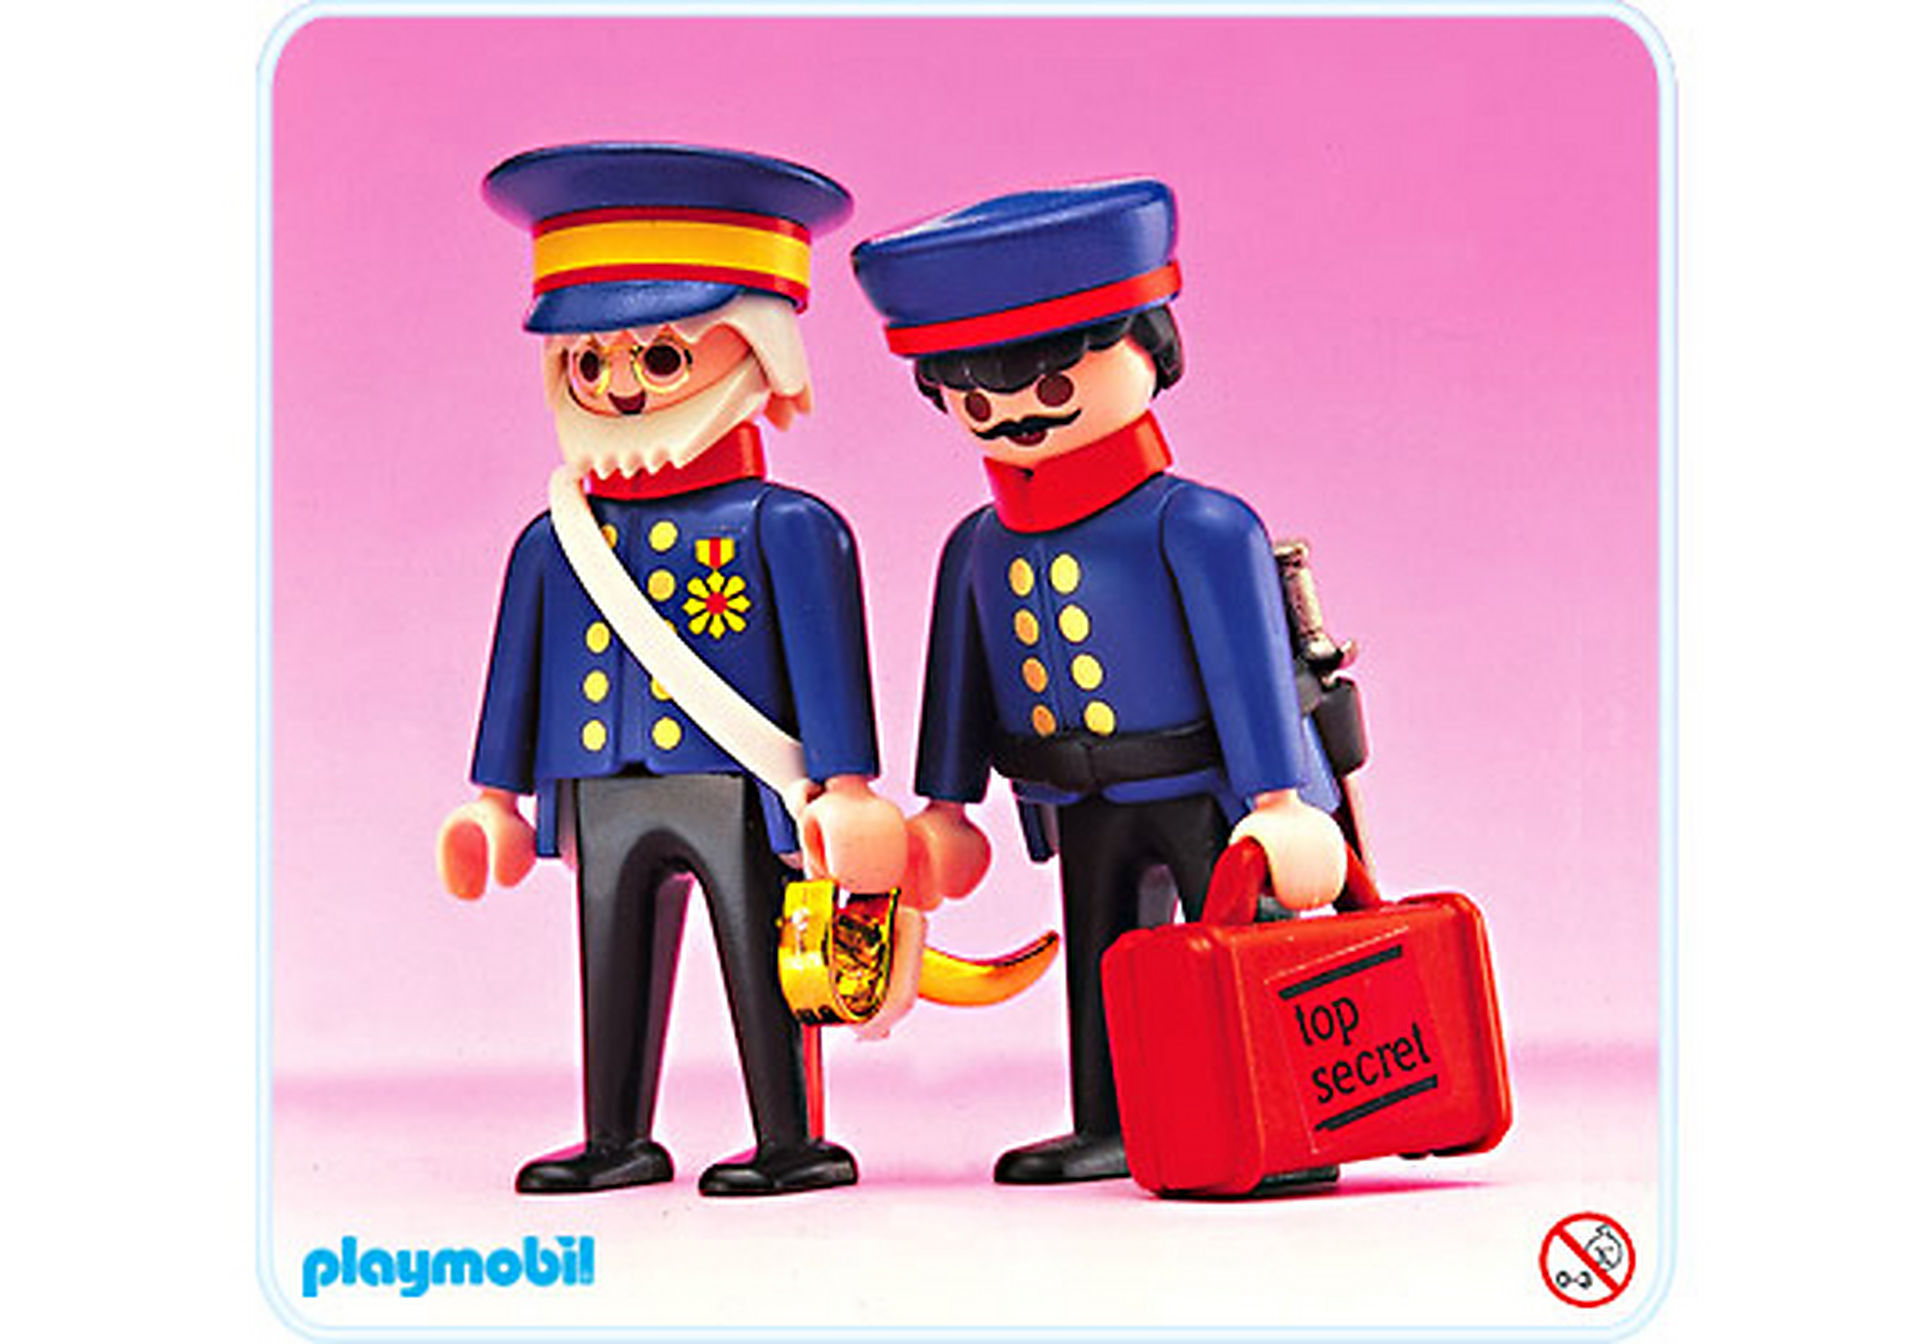 http://media.playmobil.com/i/playmobil/5405-A_product_detail/Officier / ordonnance